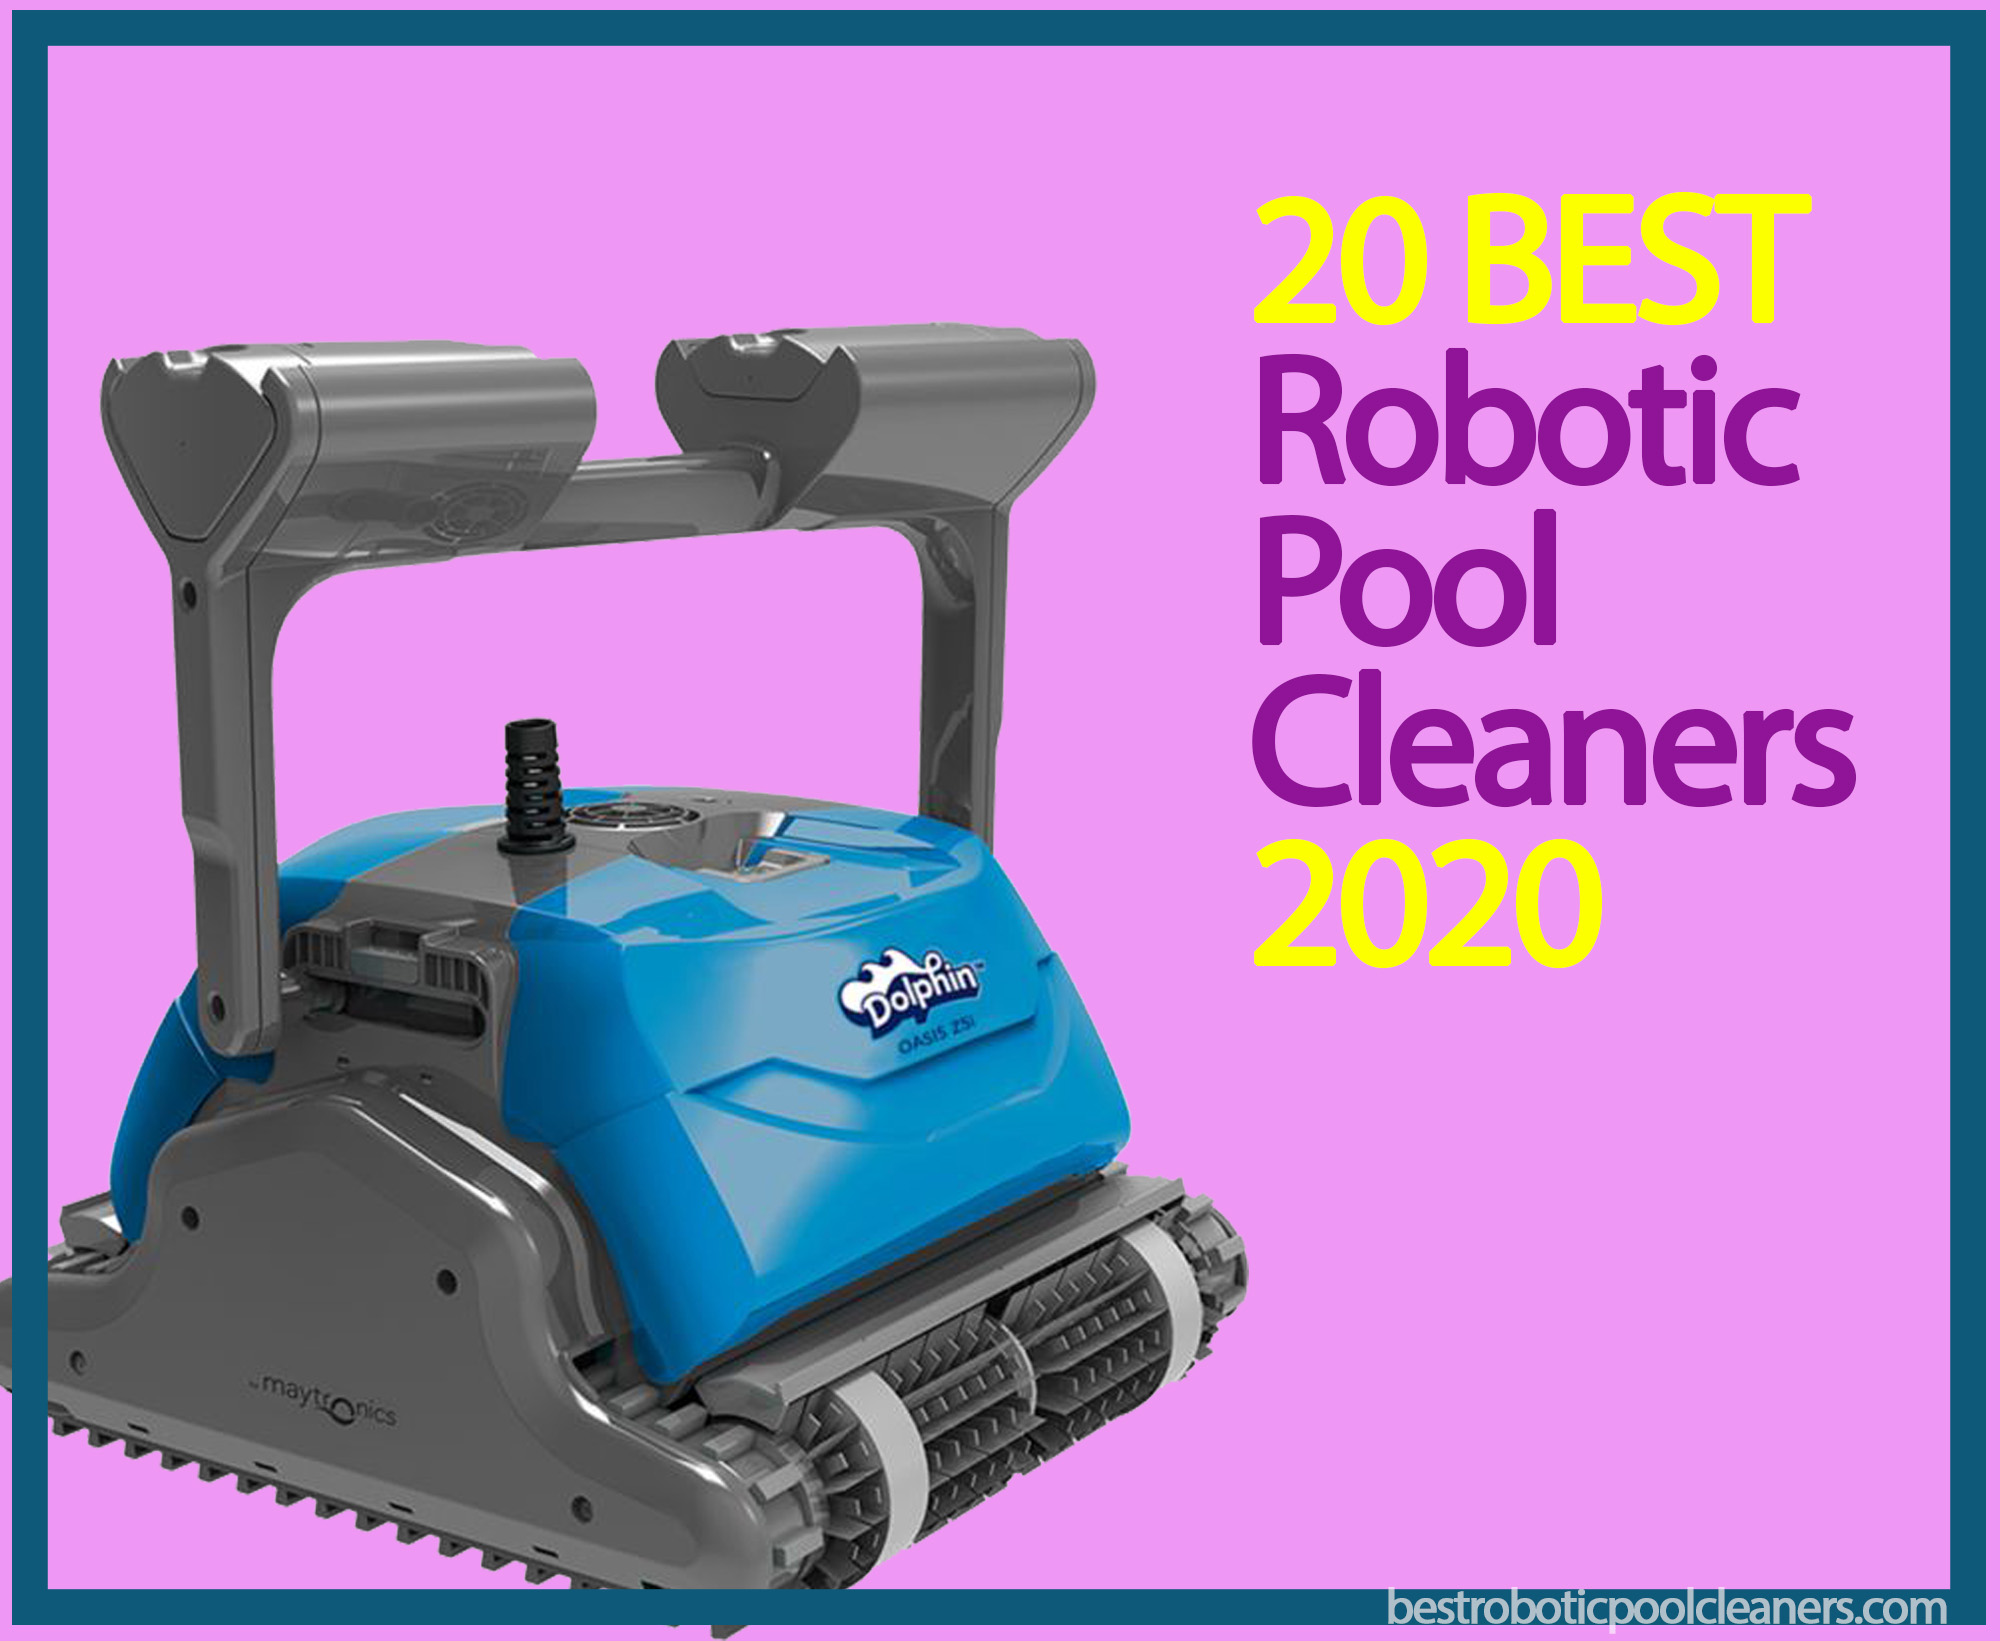 20 Best Robotic Pool Cleaners For 2020 Best Robotic Pool Cleaners